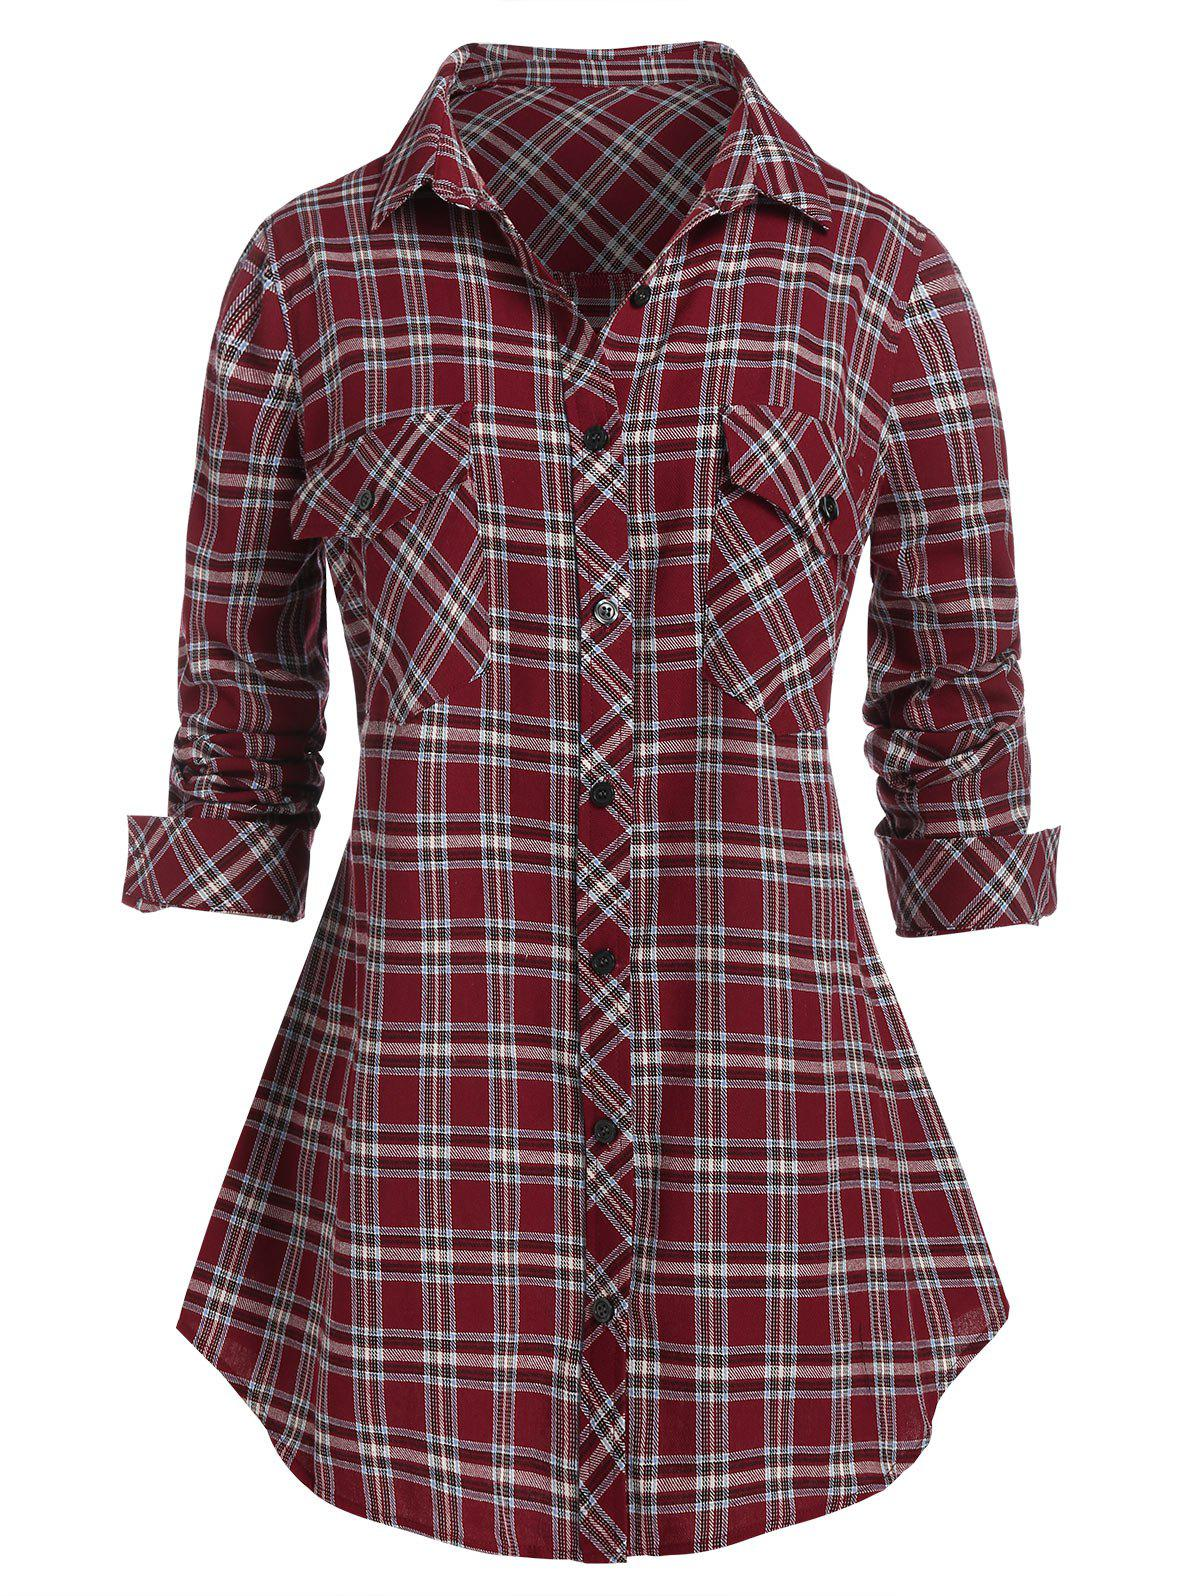 Plus Size Plaid Roll Up Sleeve Tunic Shirt - RED WINE 2X